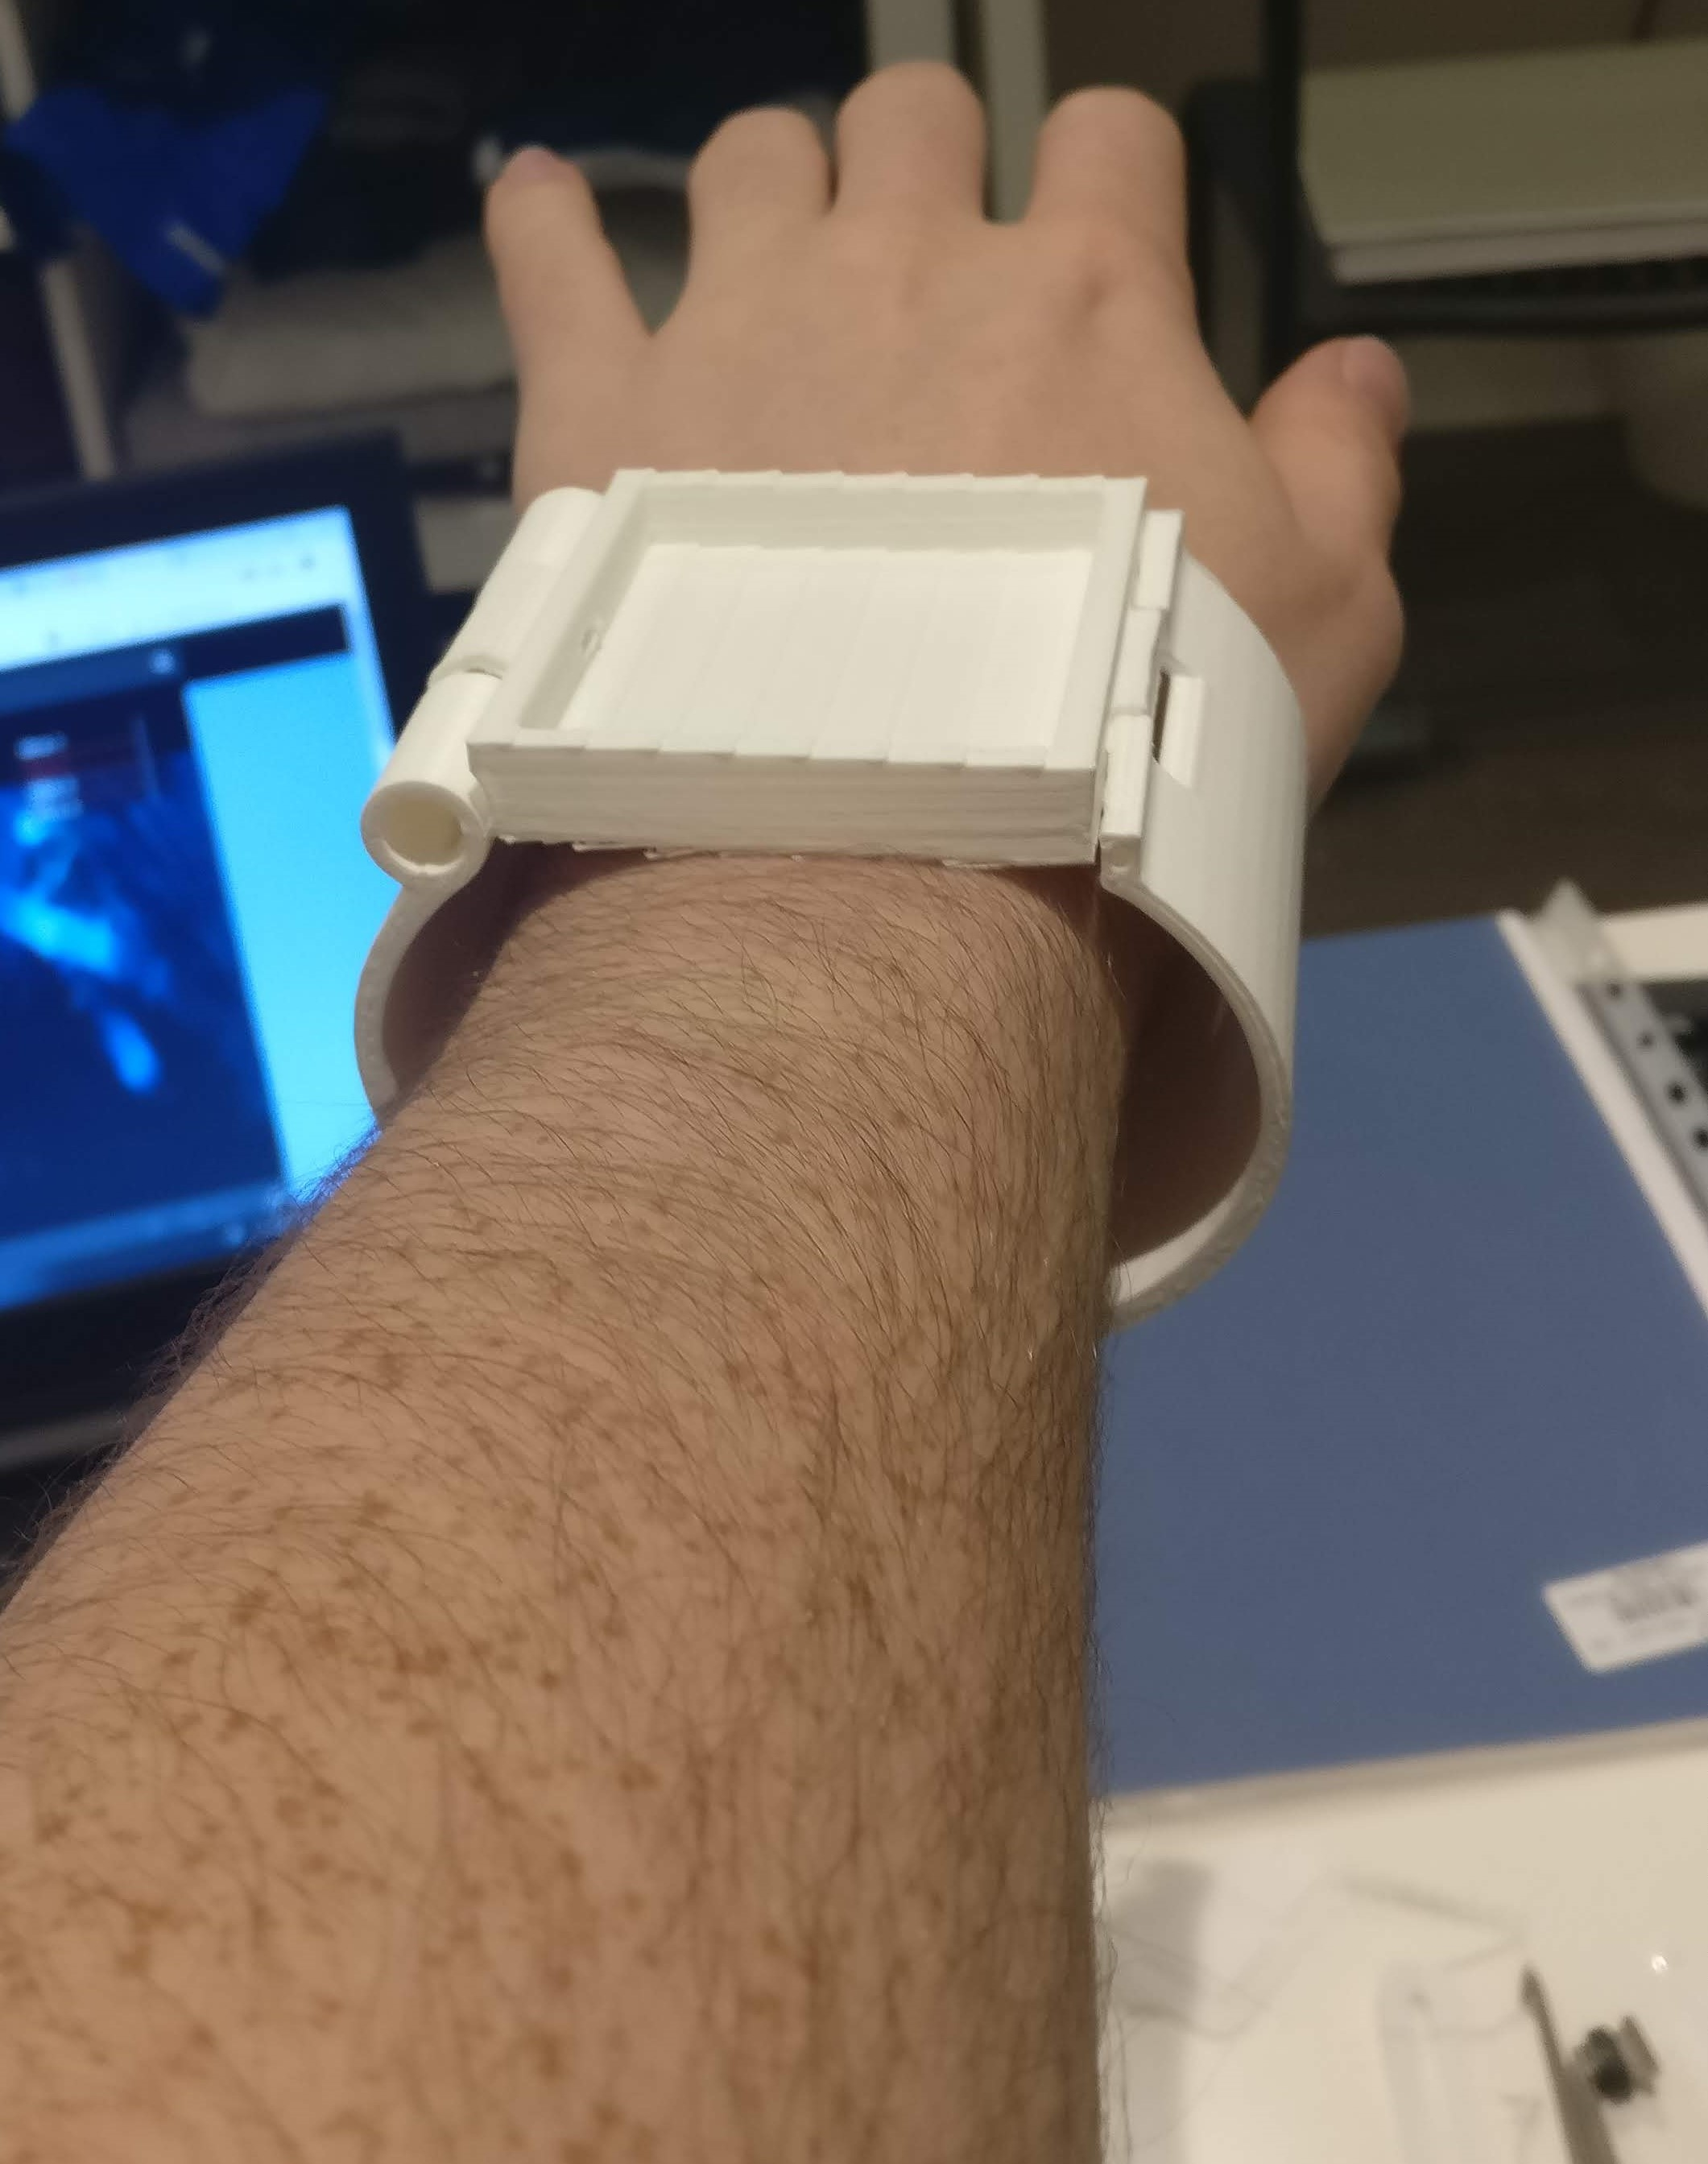 Project | Gesture Controlled Smartwatch | Hackaday io